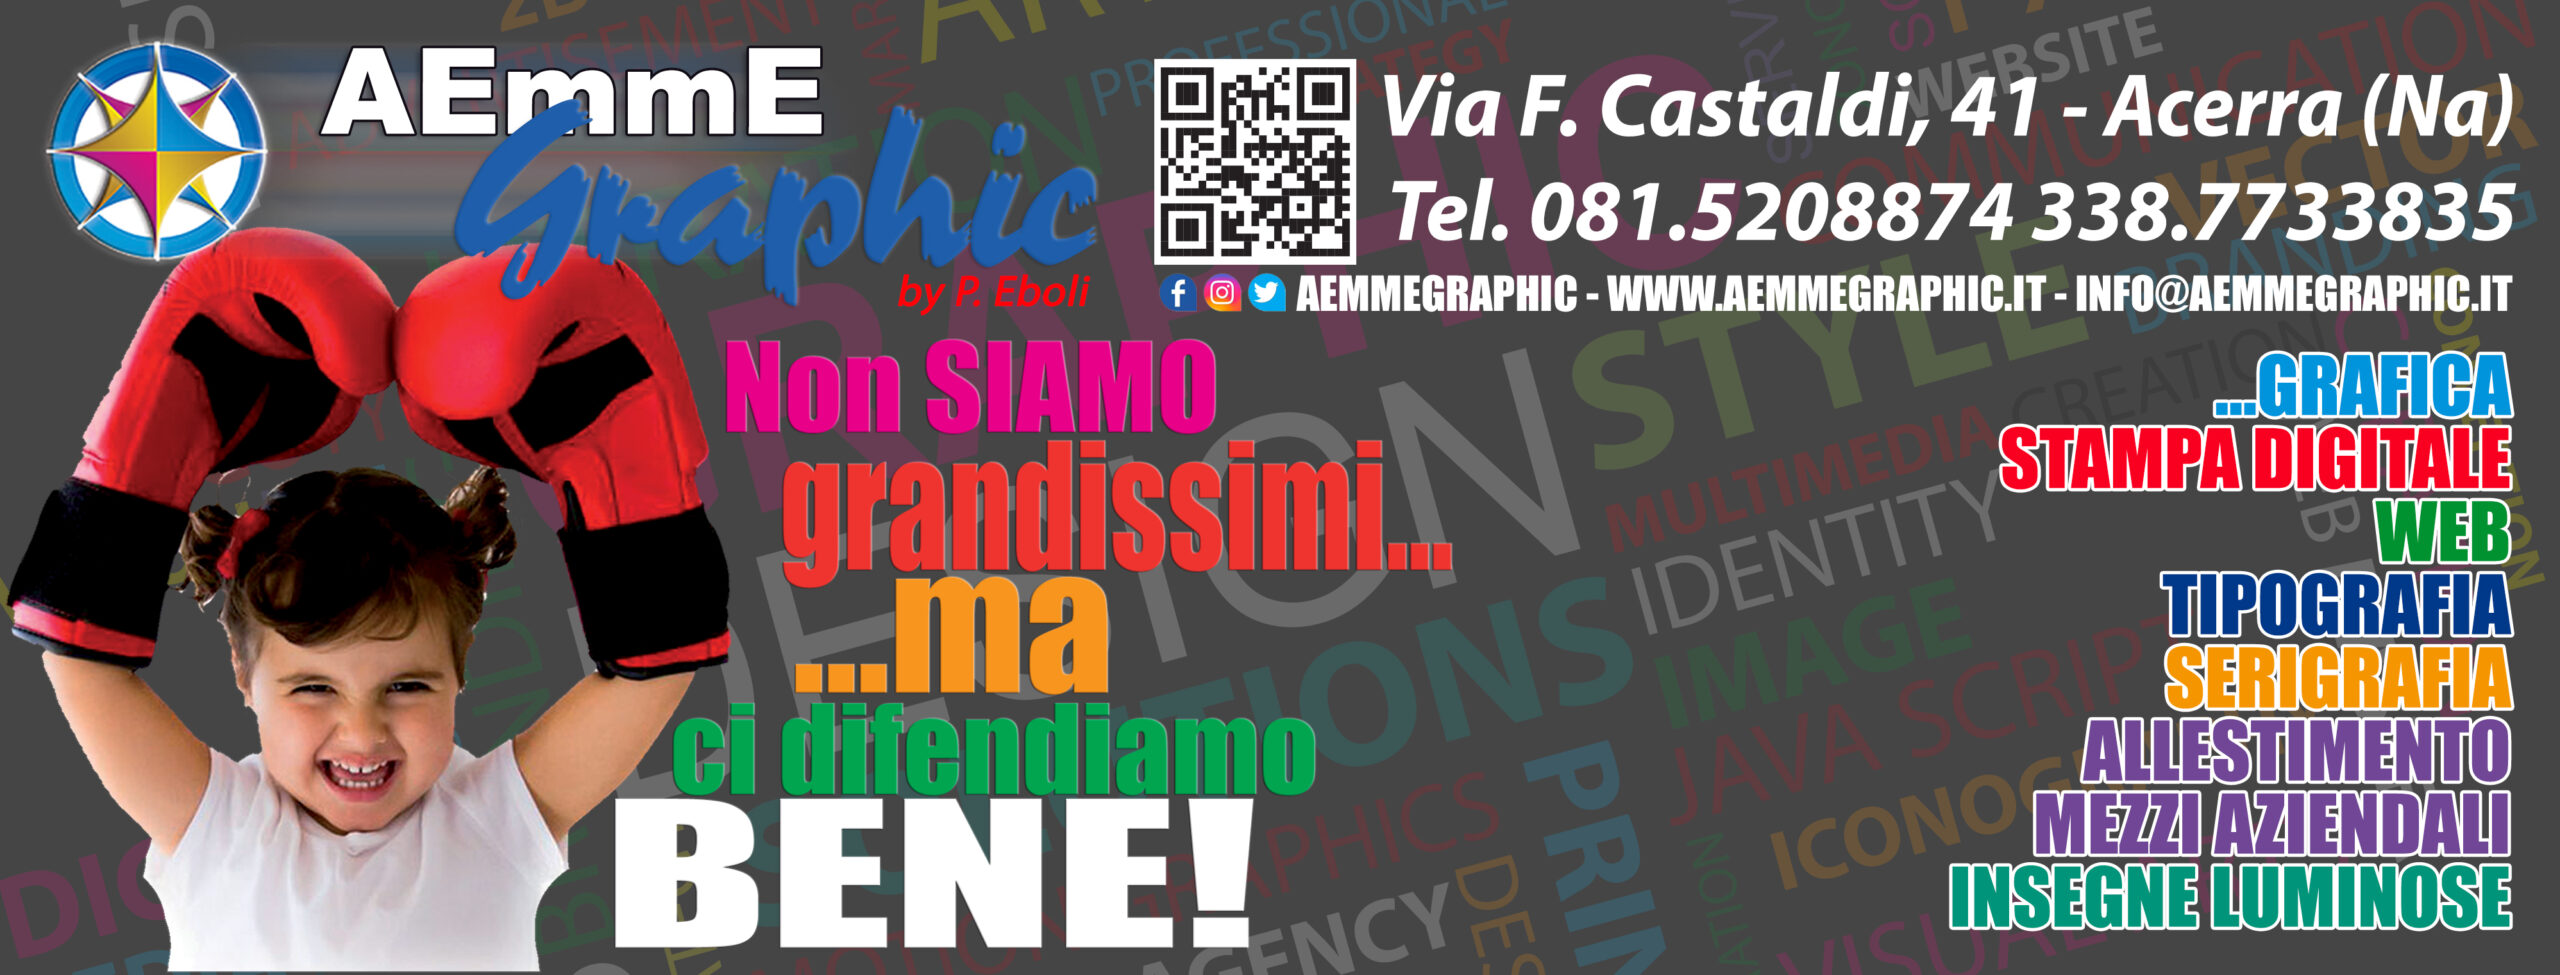 www.aemmegraphic.it